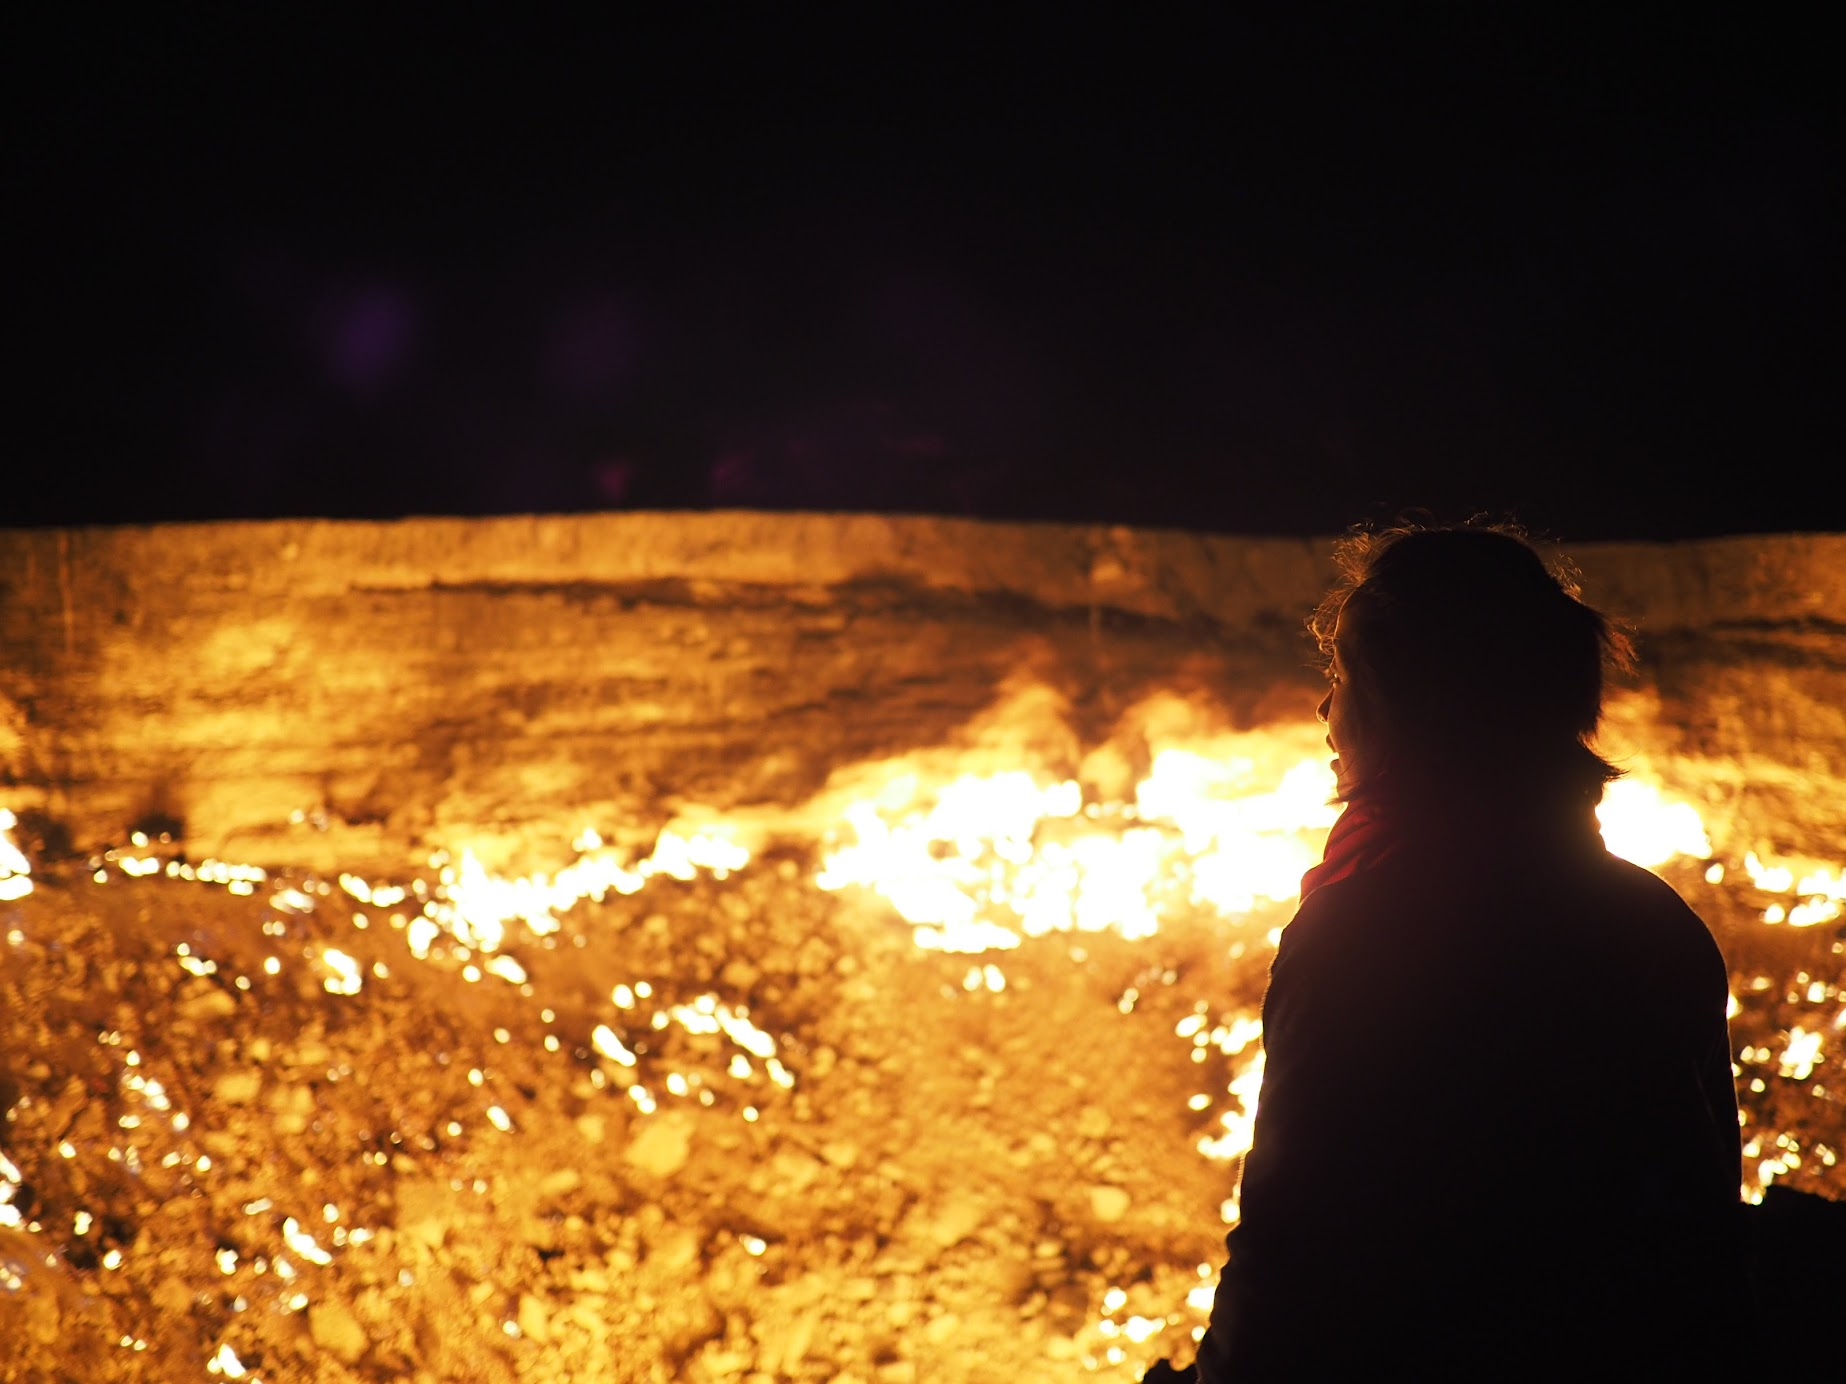 Darvaza Crater in the middle of Karakum Desert exceeded my expectation. I couldn't take my eyes off the dancing flames.